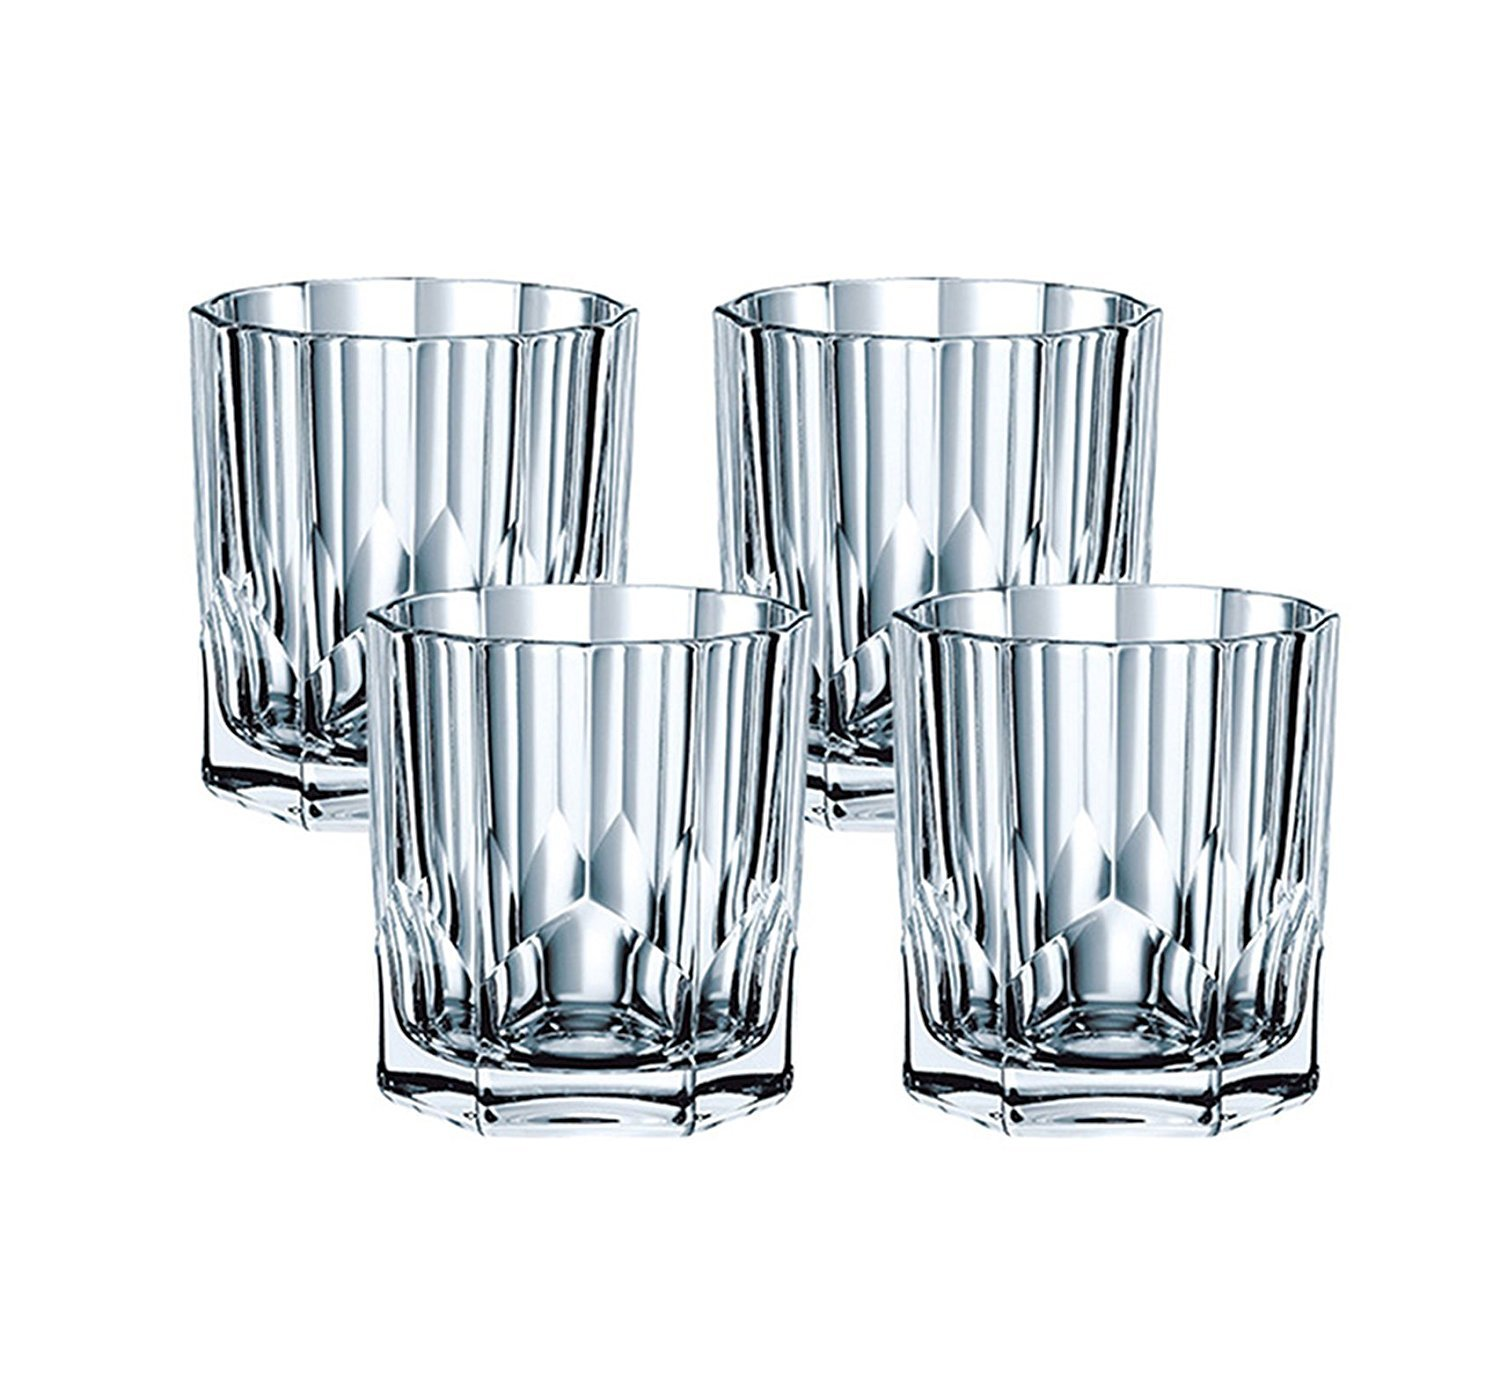 Nachtmann Aspen Decanter and Whiskey Tumbler 7 Piece Set 90025